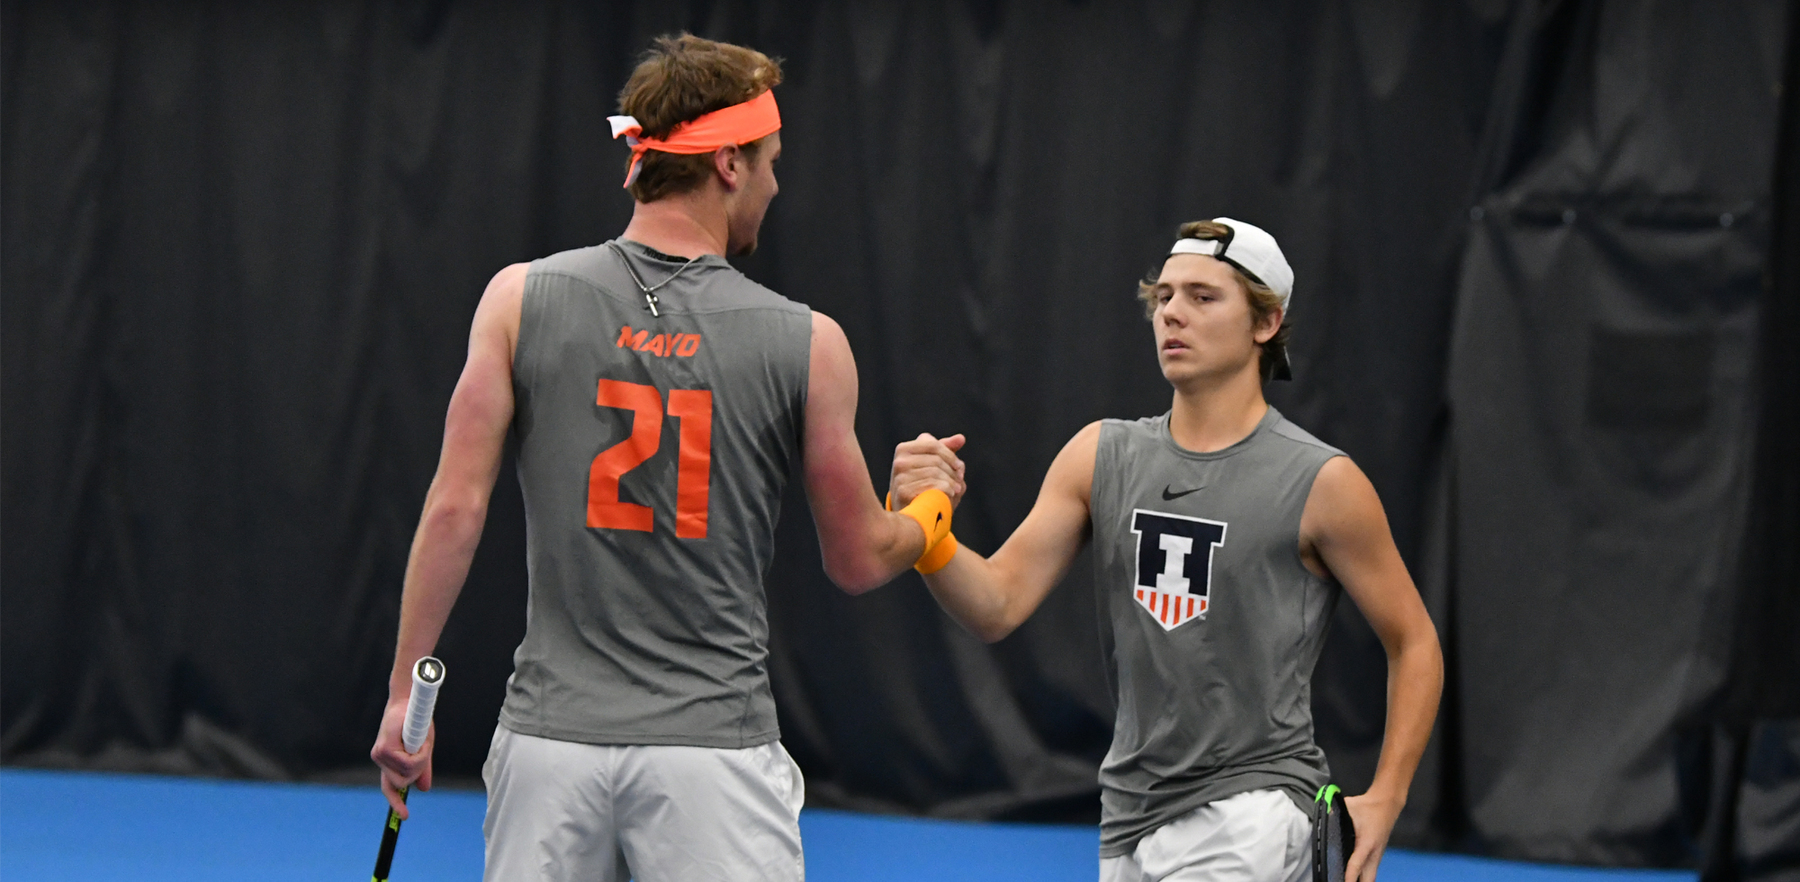 Men's Tennis doubles partners shake hands during a match